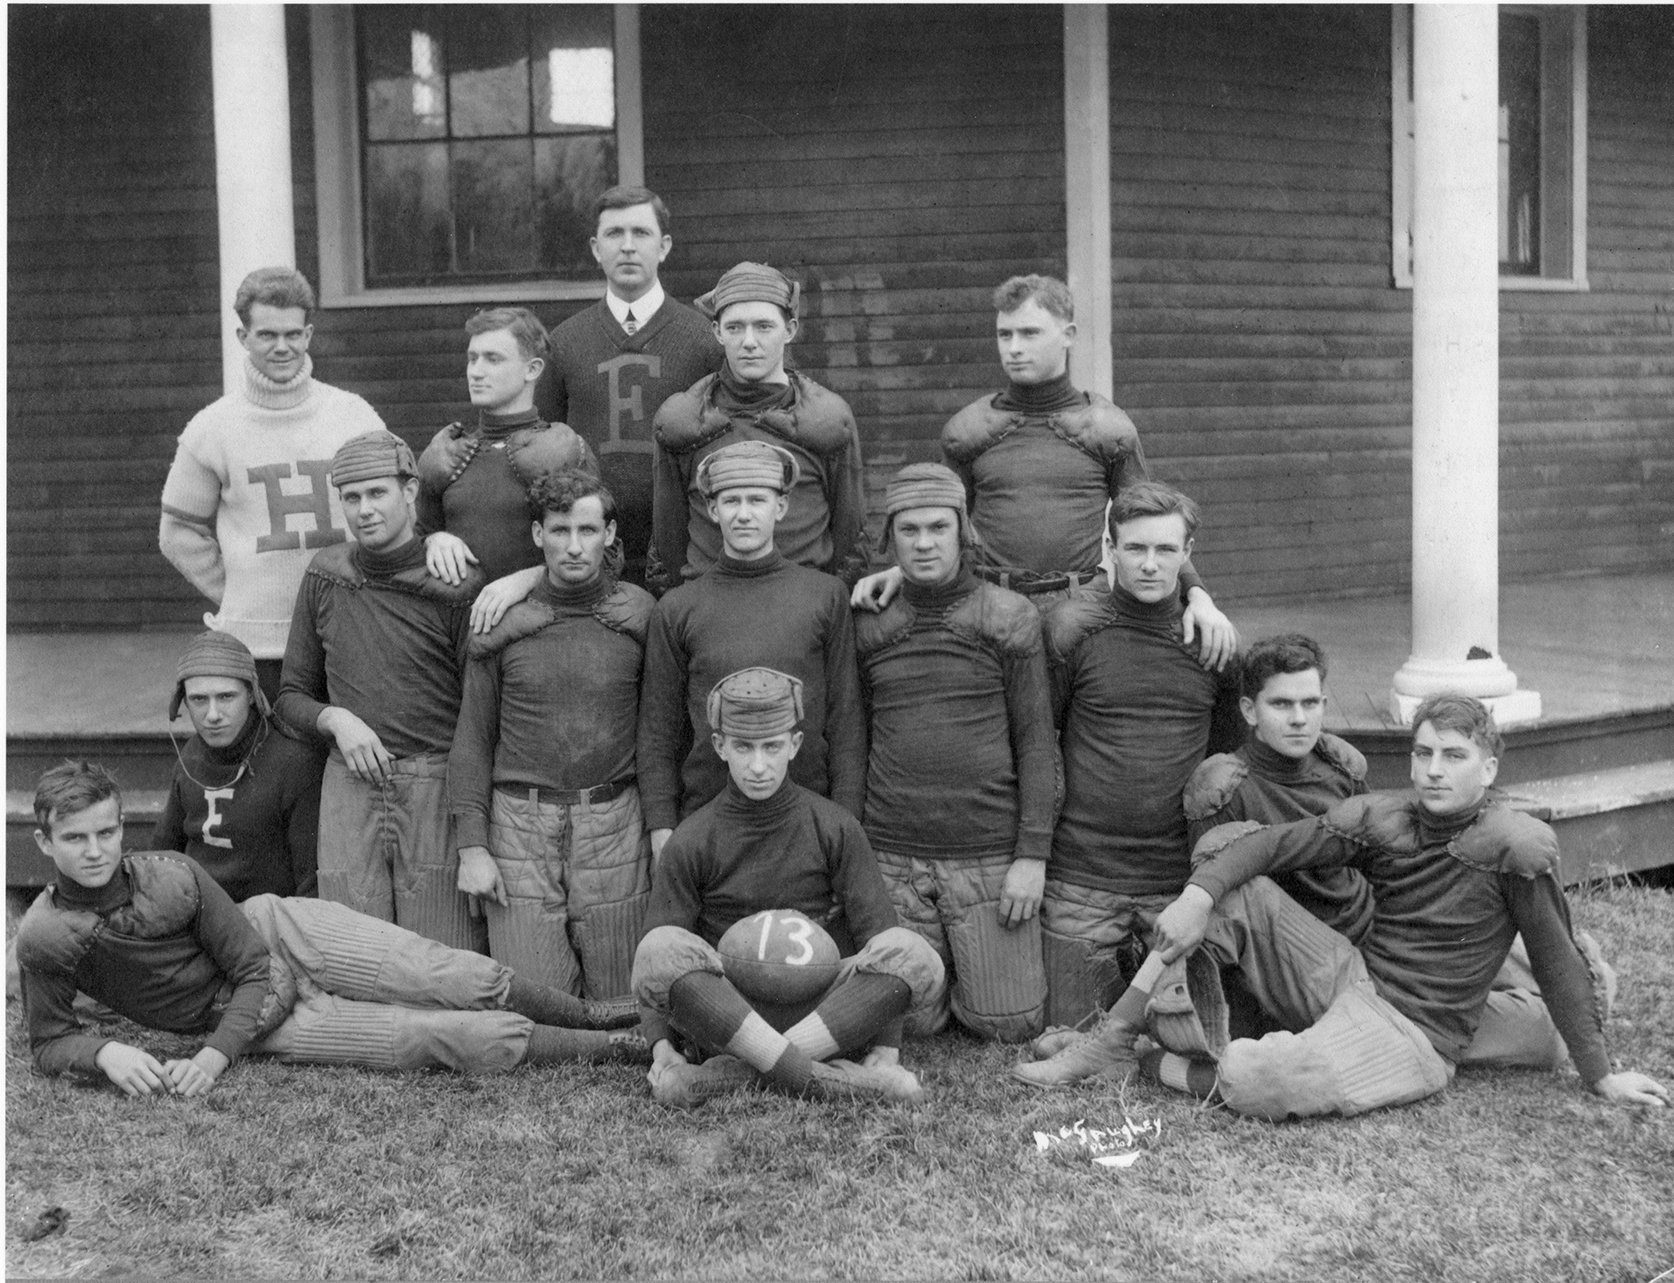 1913 Eastern football team posed in front of the Miller Gymnasium. EKU Photo Collection.